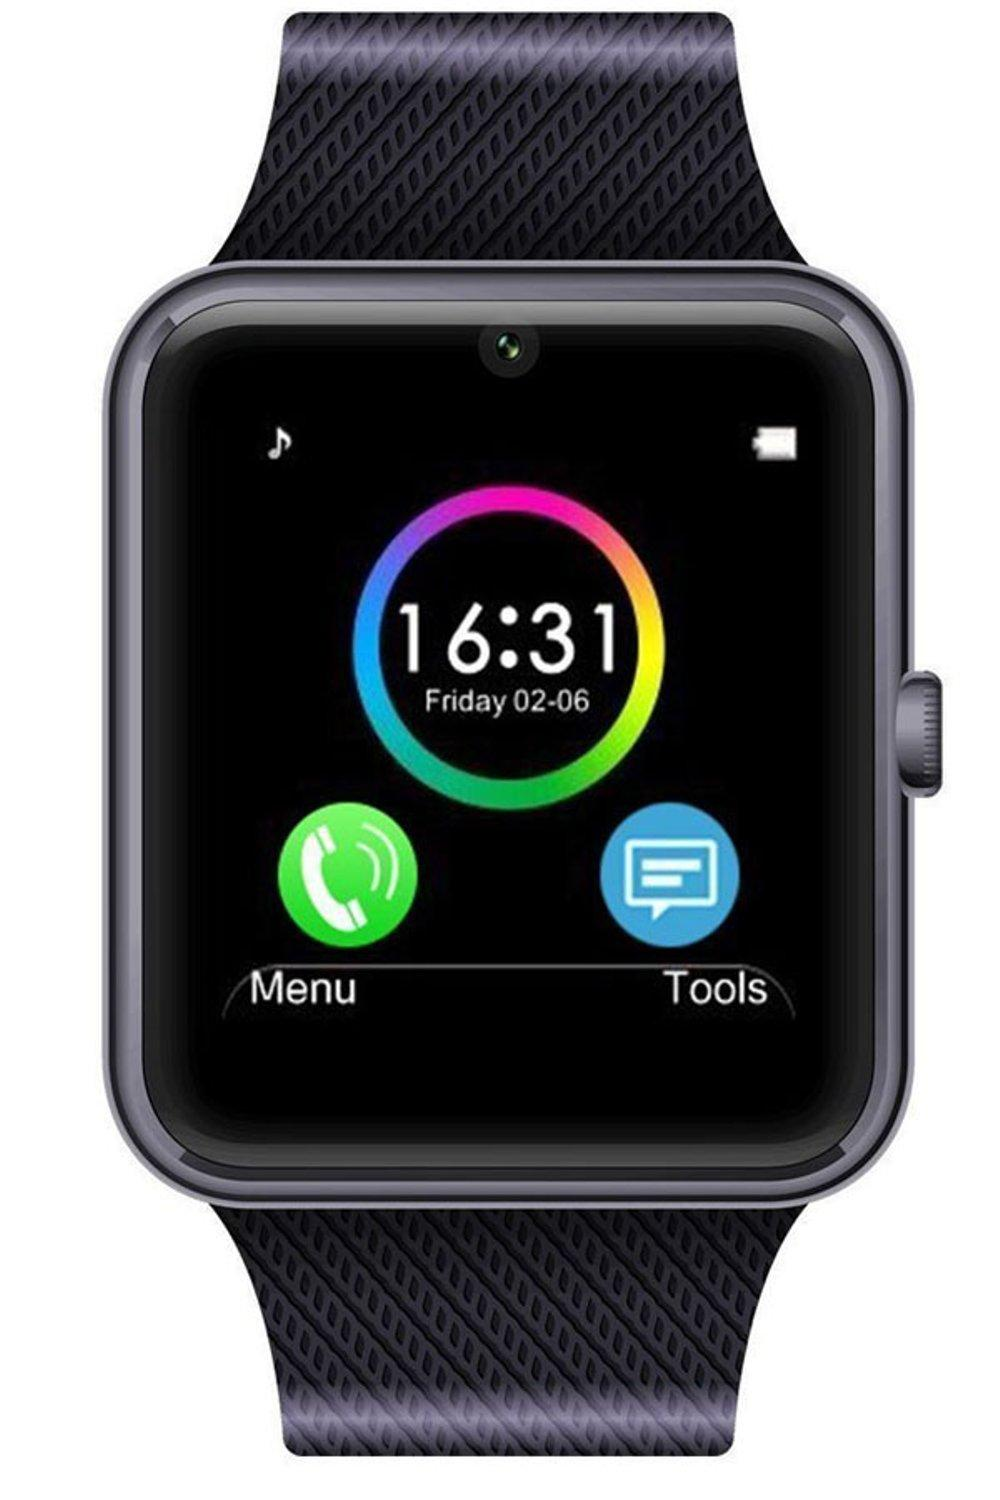 Buy Sell Cheapest Cognos Smart Watch Best Quality Product Deals Onix A1 U10 Smartwatch Full Black Gt08